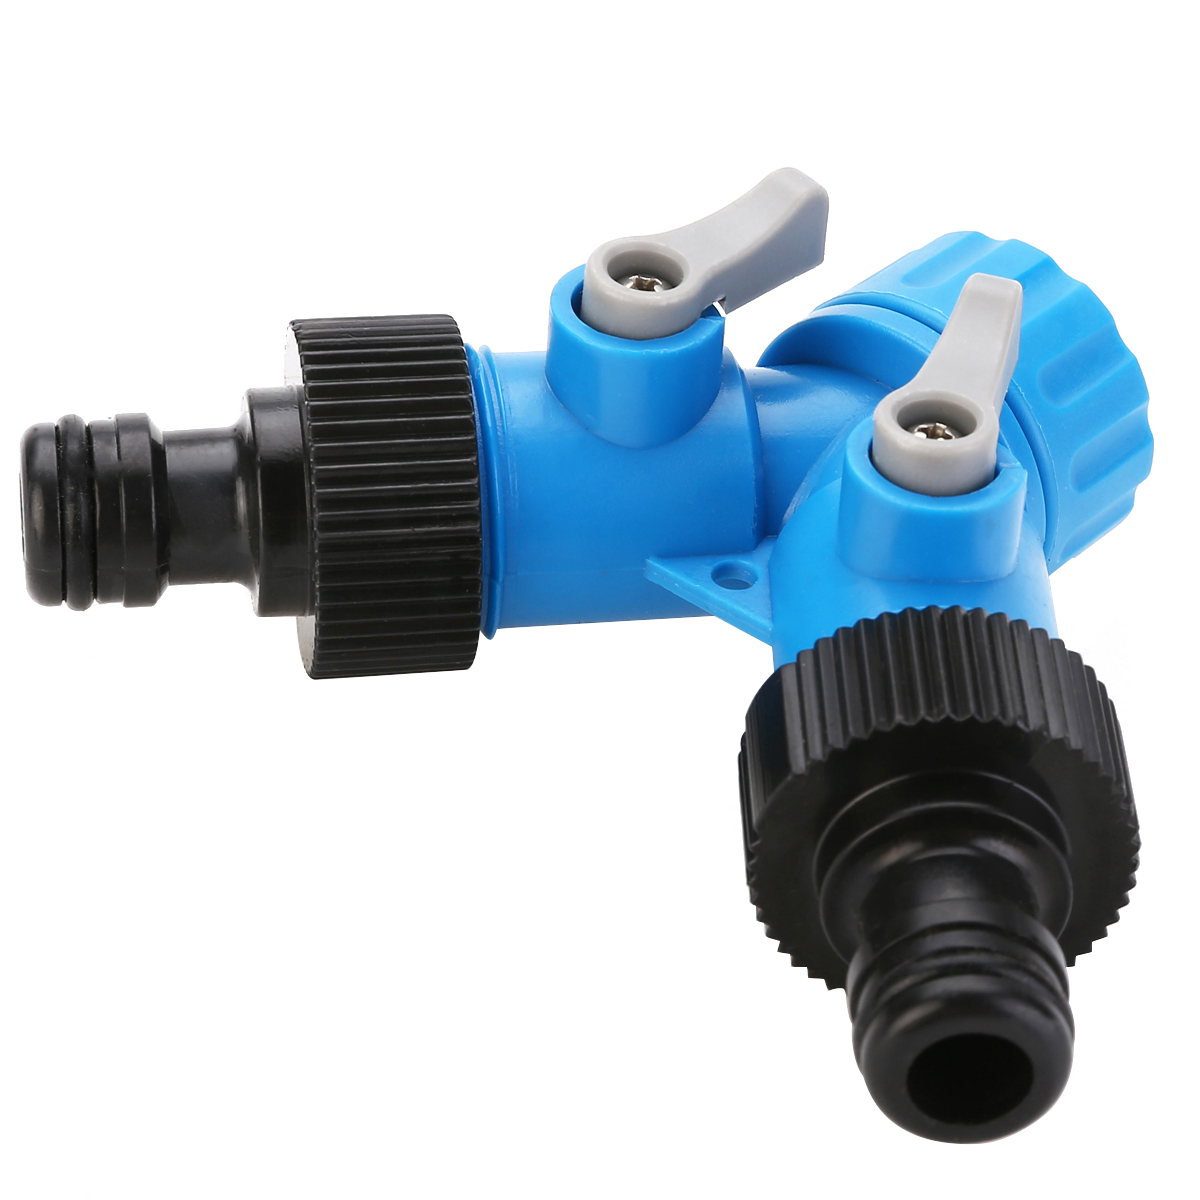 3/4 Inch Two Way Tap Y Hose Pipe Garden Irrigation Splitter Tap Connector Fitting Adapter For Home Garden Irrigation Tool